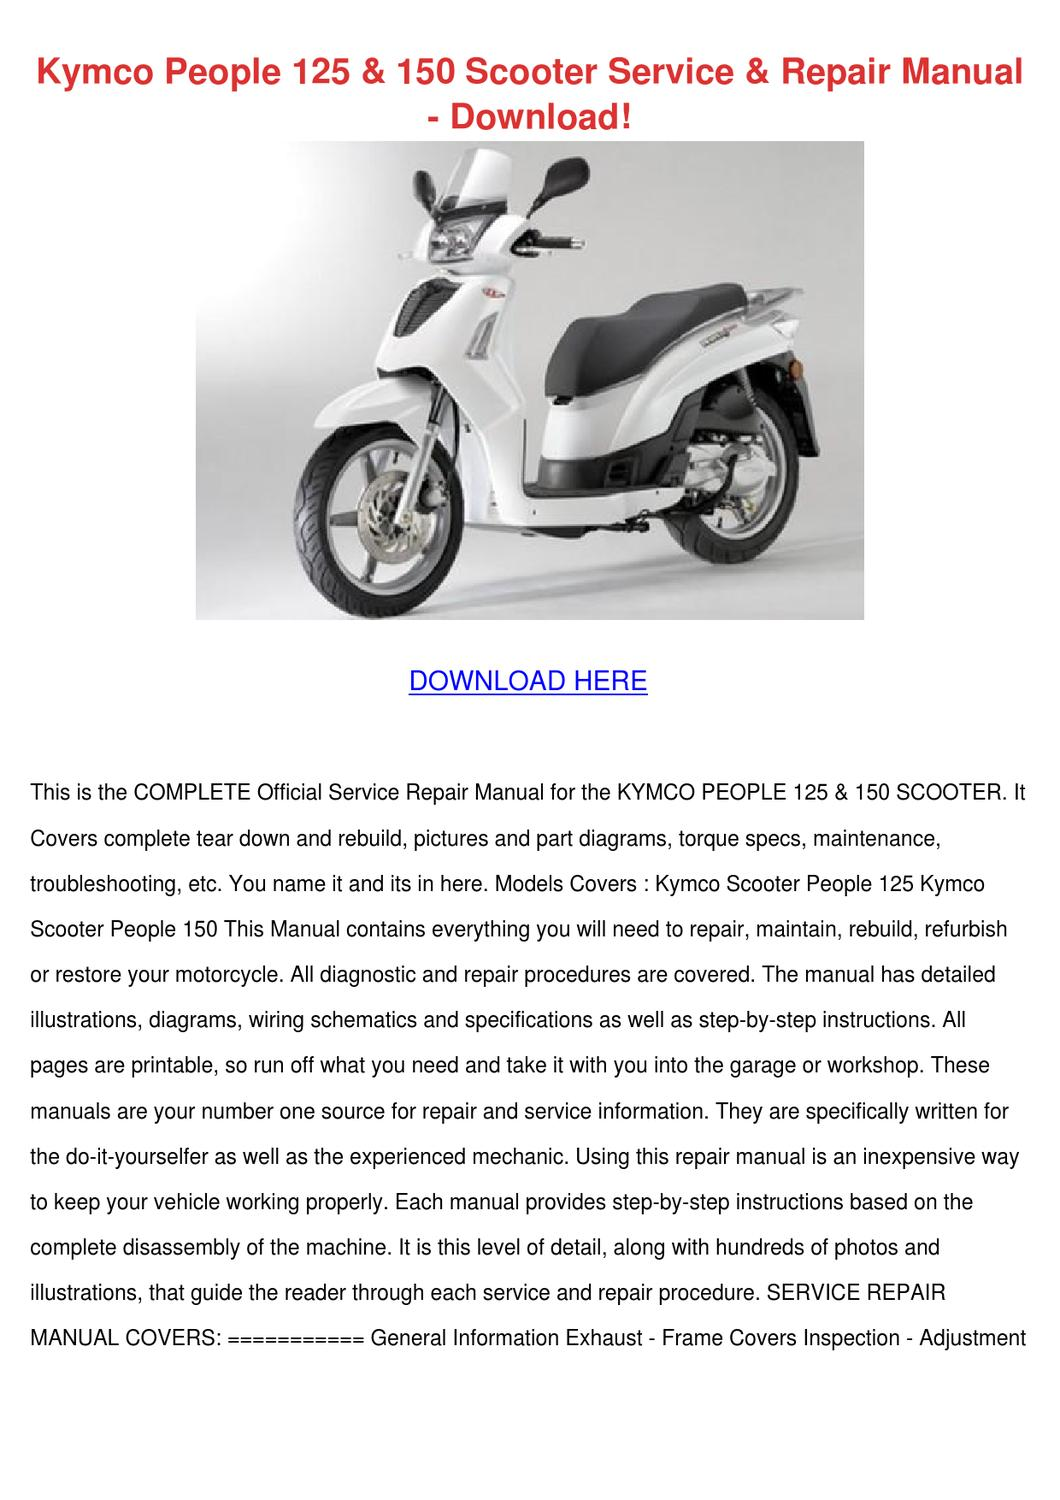 ... manual download Array - kymco people 125 150 scooter service repair m  by agnesvaldez issuu rh issuu ...